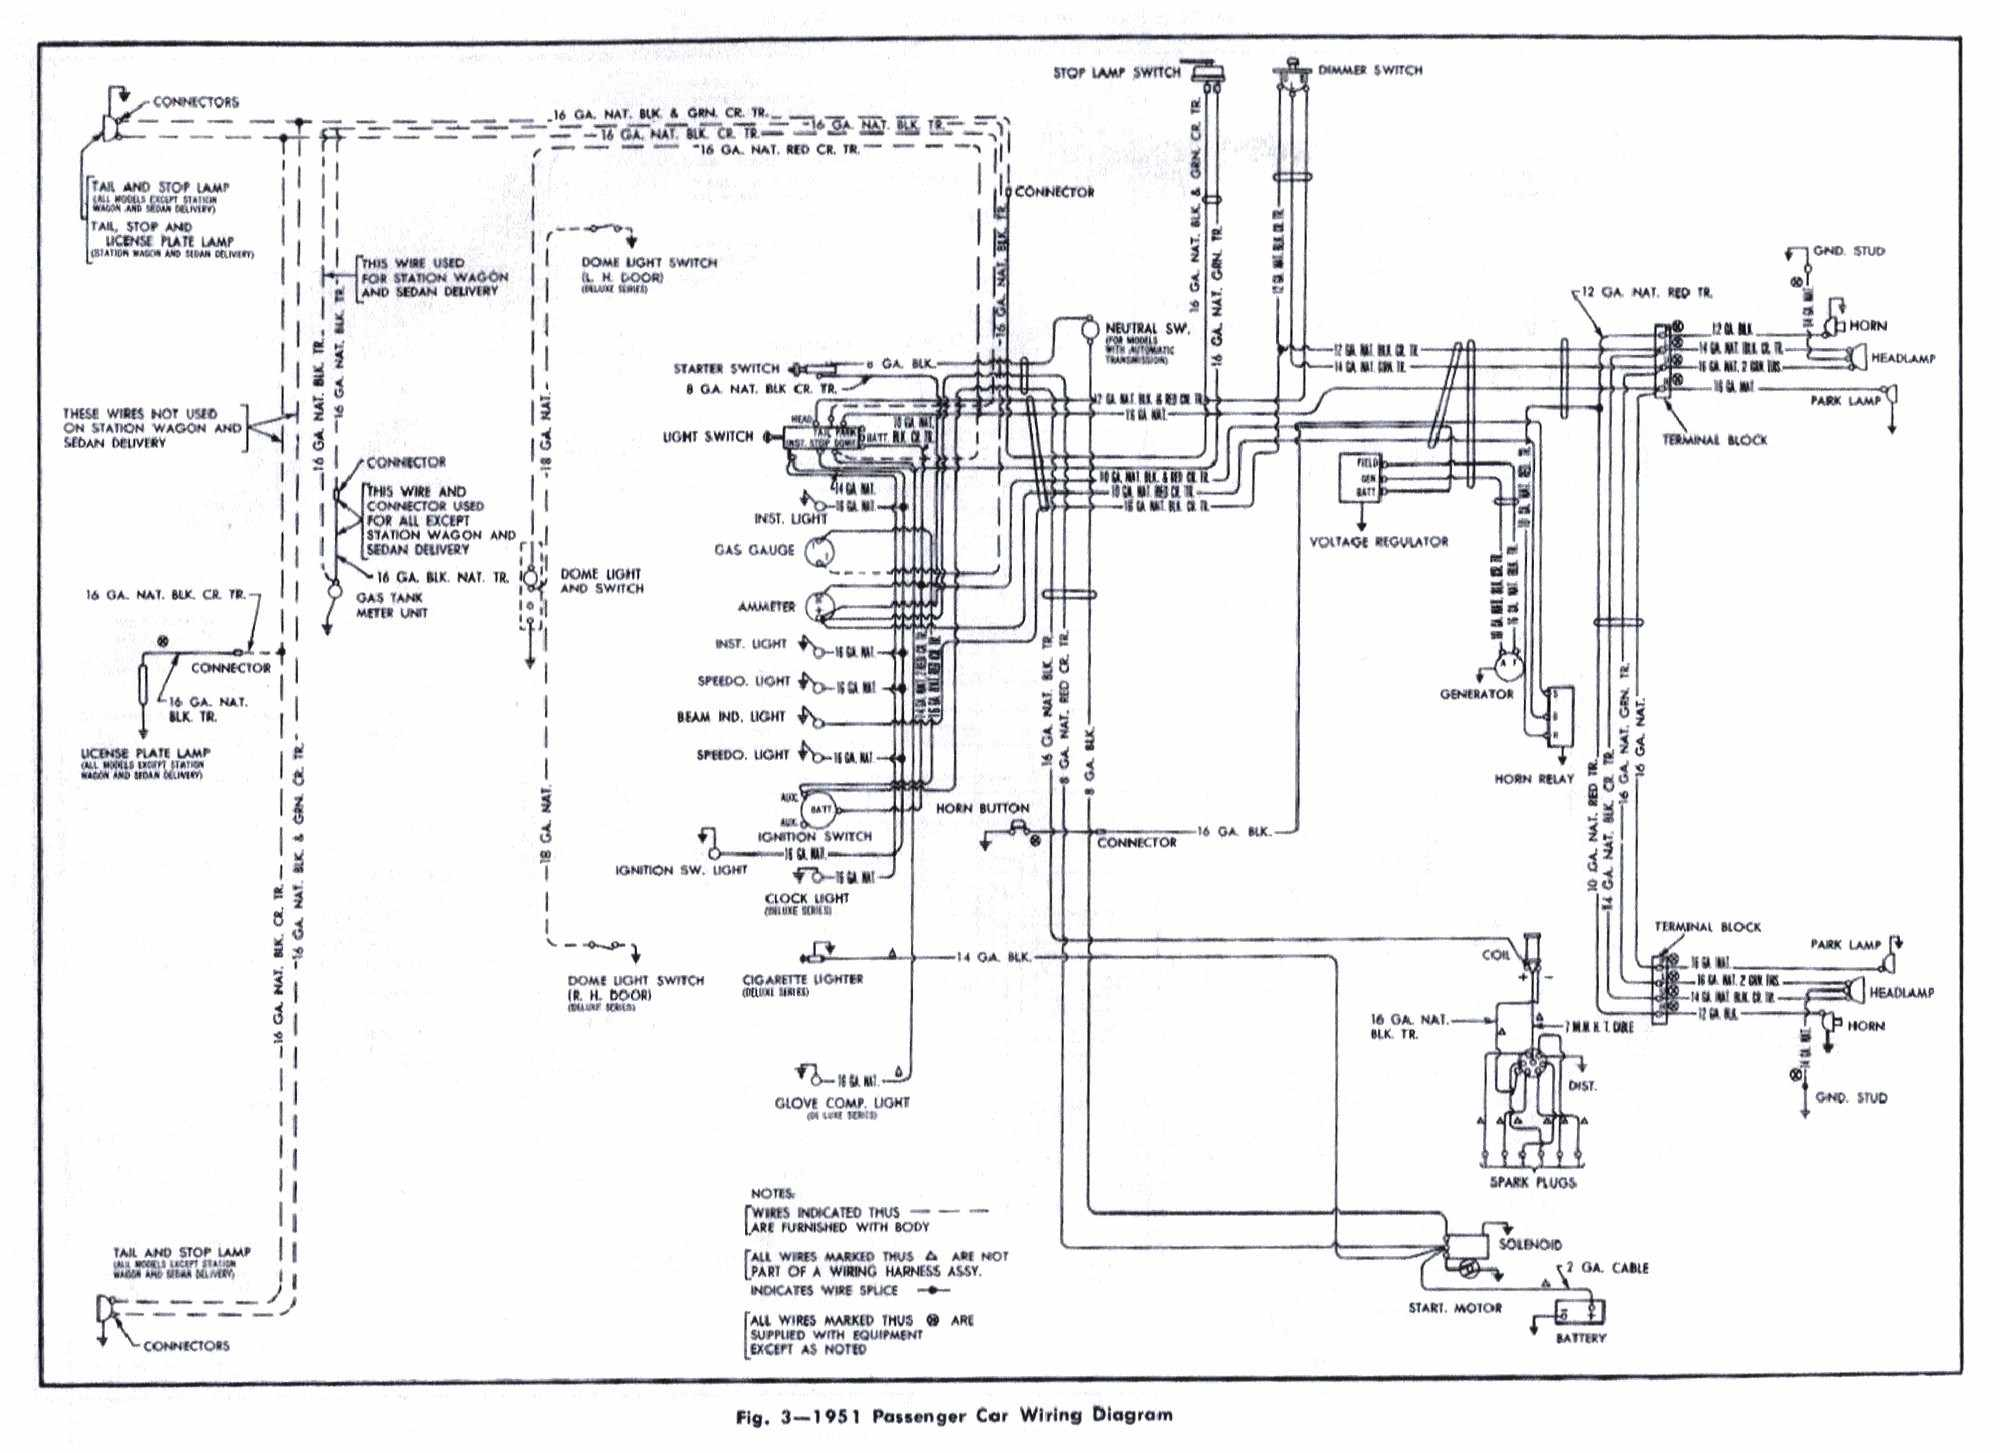 chevrolet car manuals wiring diagrams pdf fault codes rh automotive manuals net chevrolet wiring diagrams free download chevrolet wiring diagrams 2004